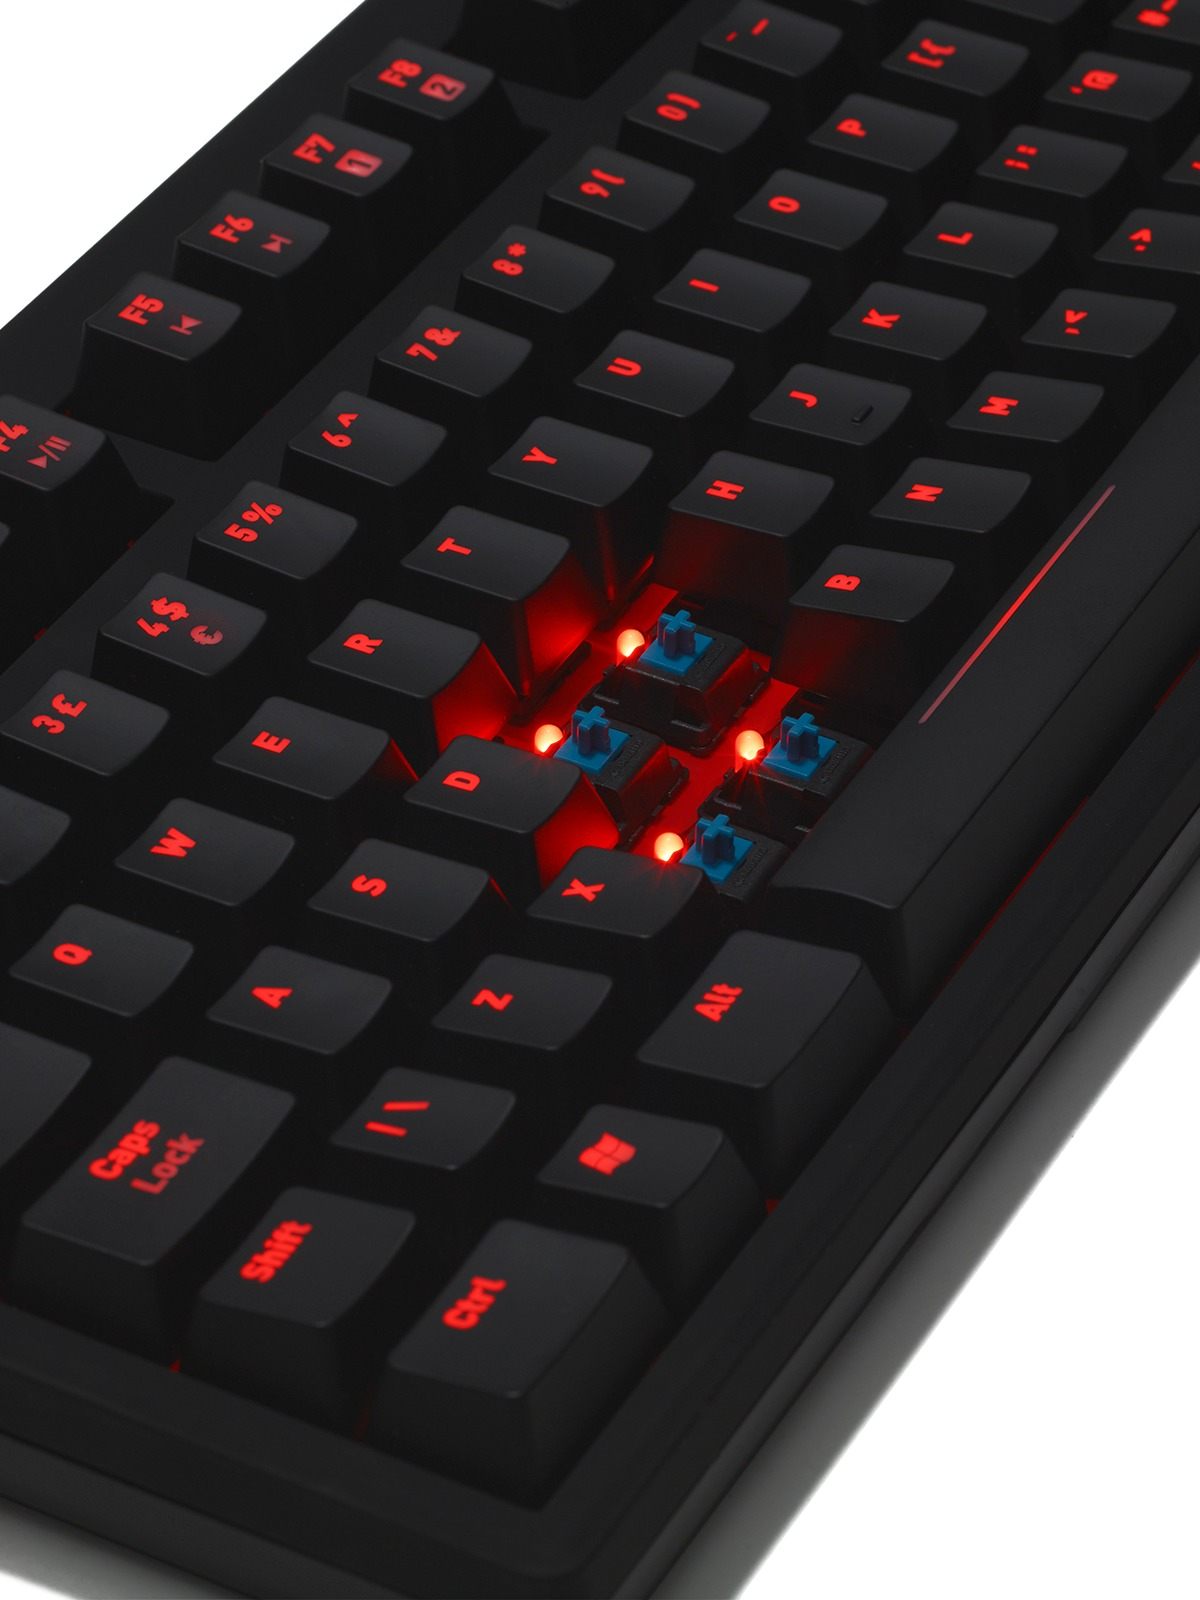 Fnatic Rush Pro Gaming Keyboard - Cherry MX Blue for PC Games image